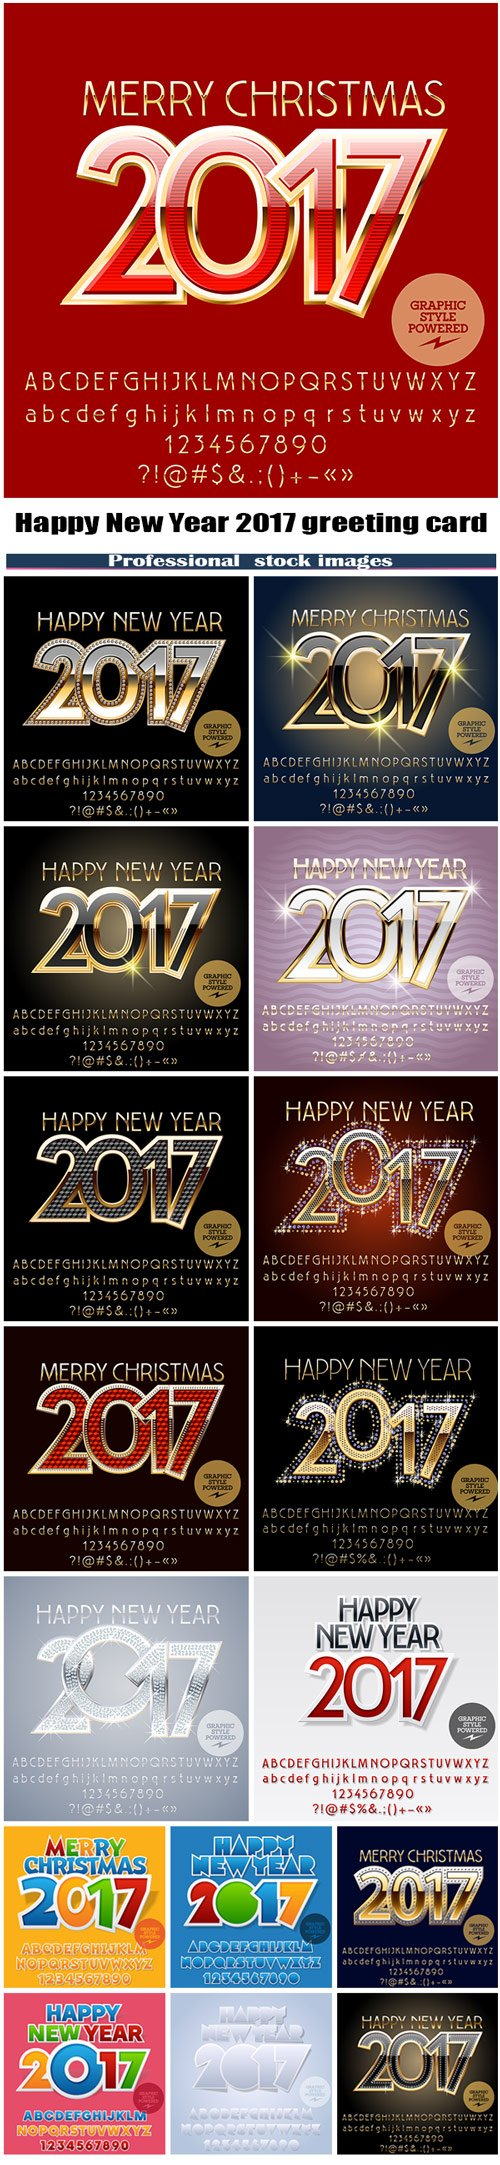 Happy New Year 2017 greeting card with set of letters, symbols and numbers